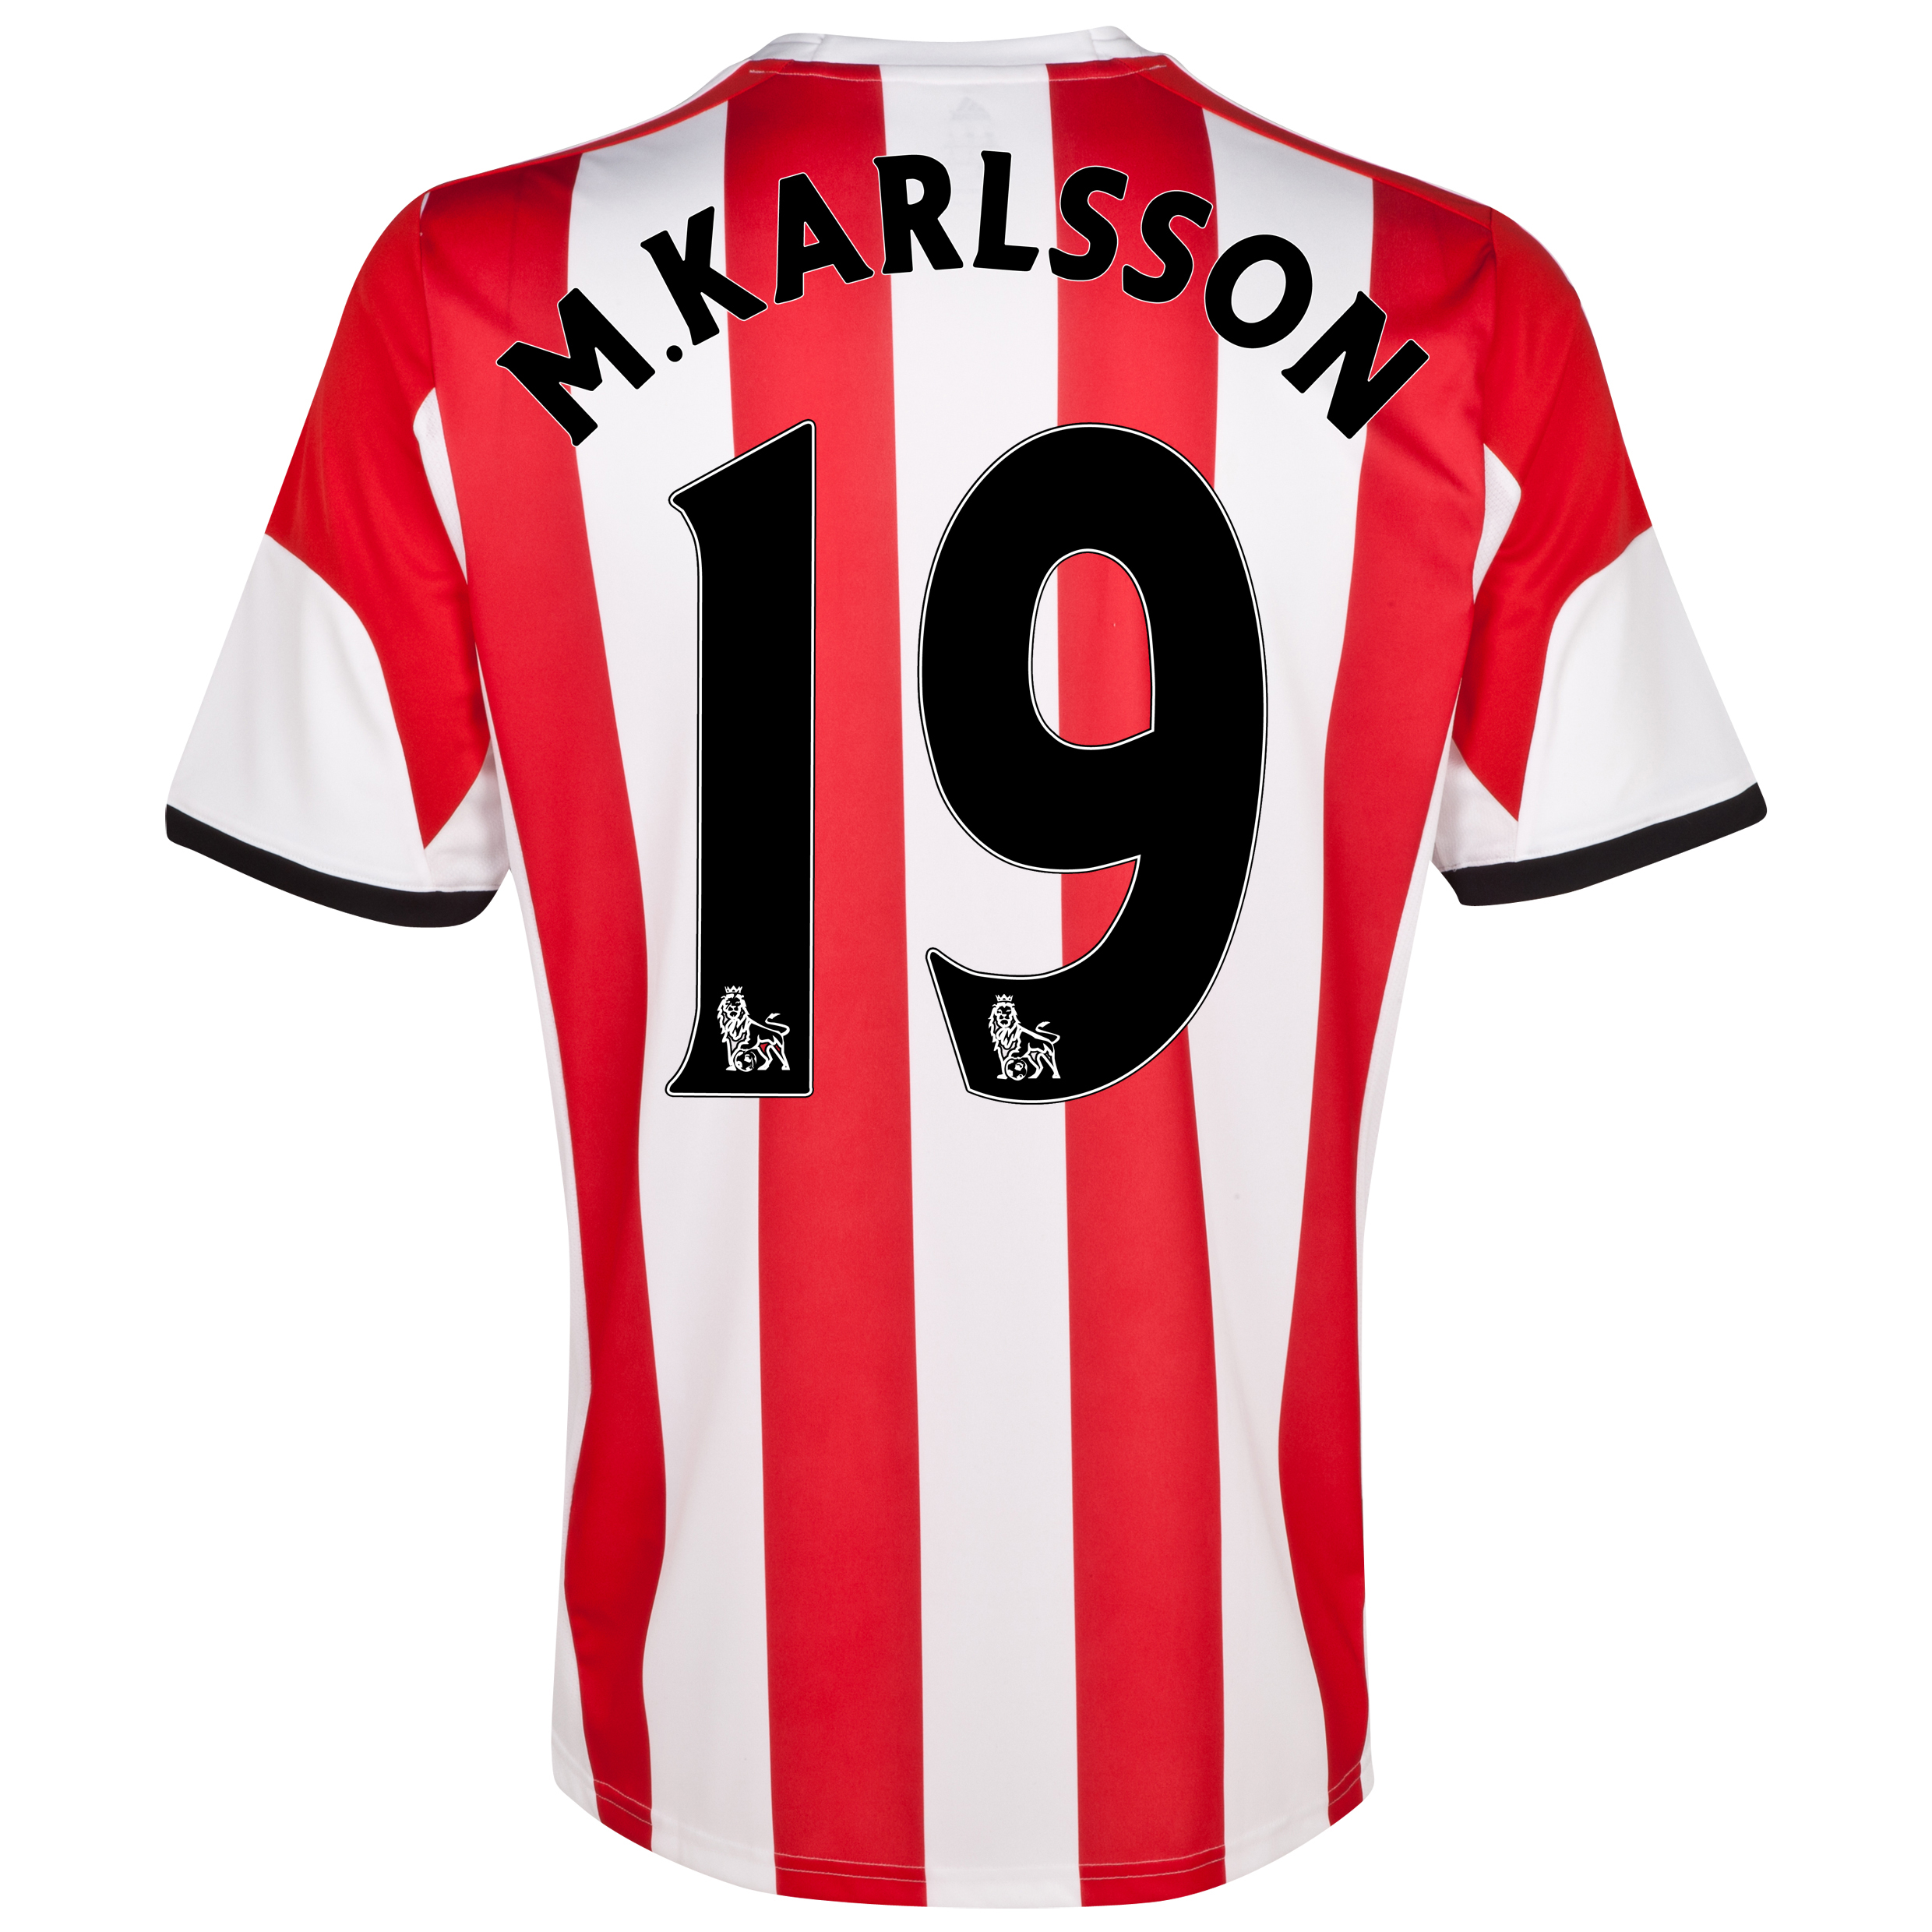 Sunderland Home Shirt 2013/14 with M.Karlsson 19 printing